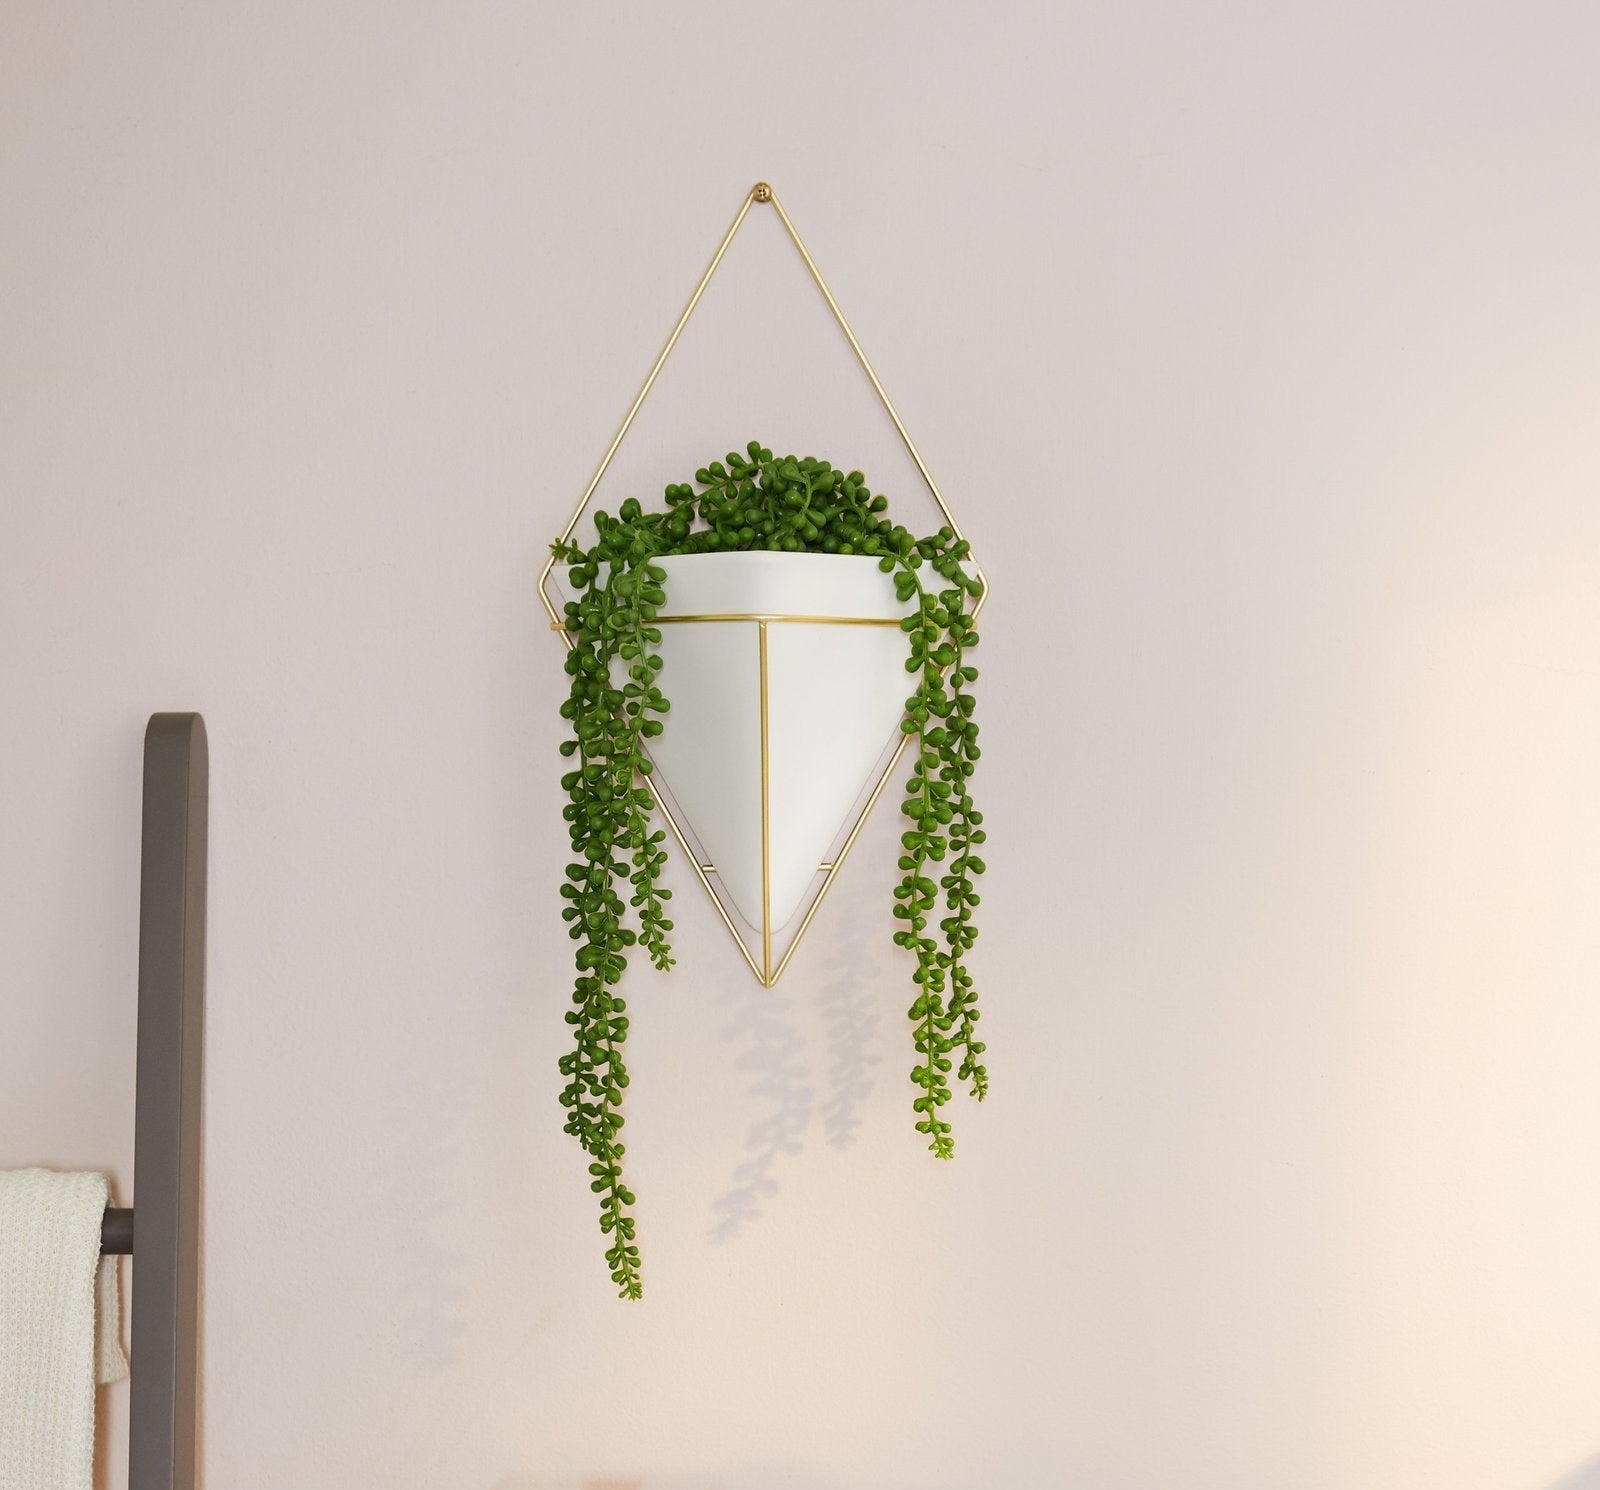 The white and gold diamond wall planter